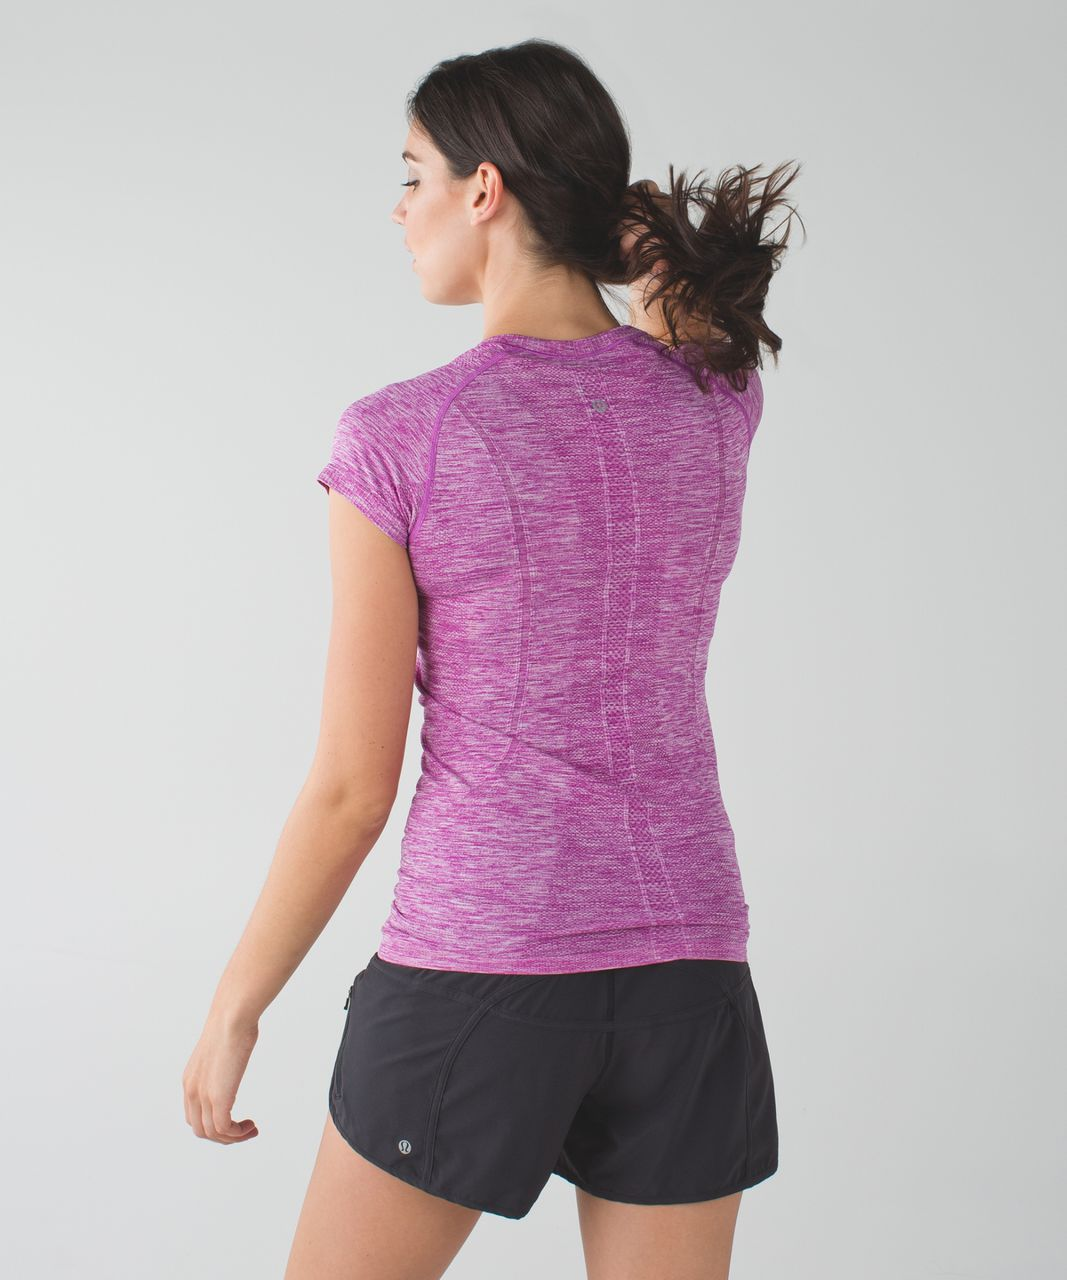 Lululemon Swiftly Tech Short Sleeve Crew - Heathered Ultra Violet